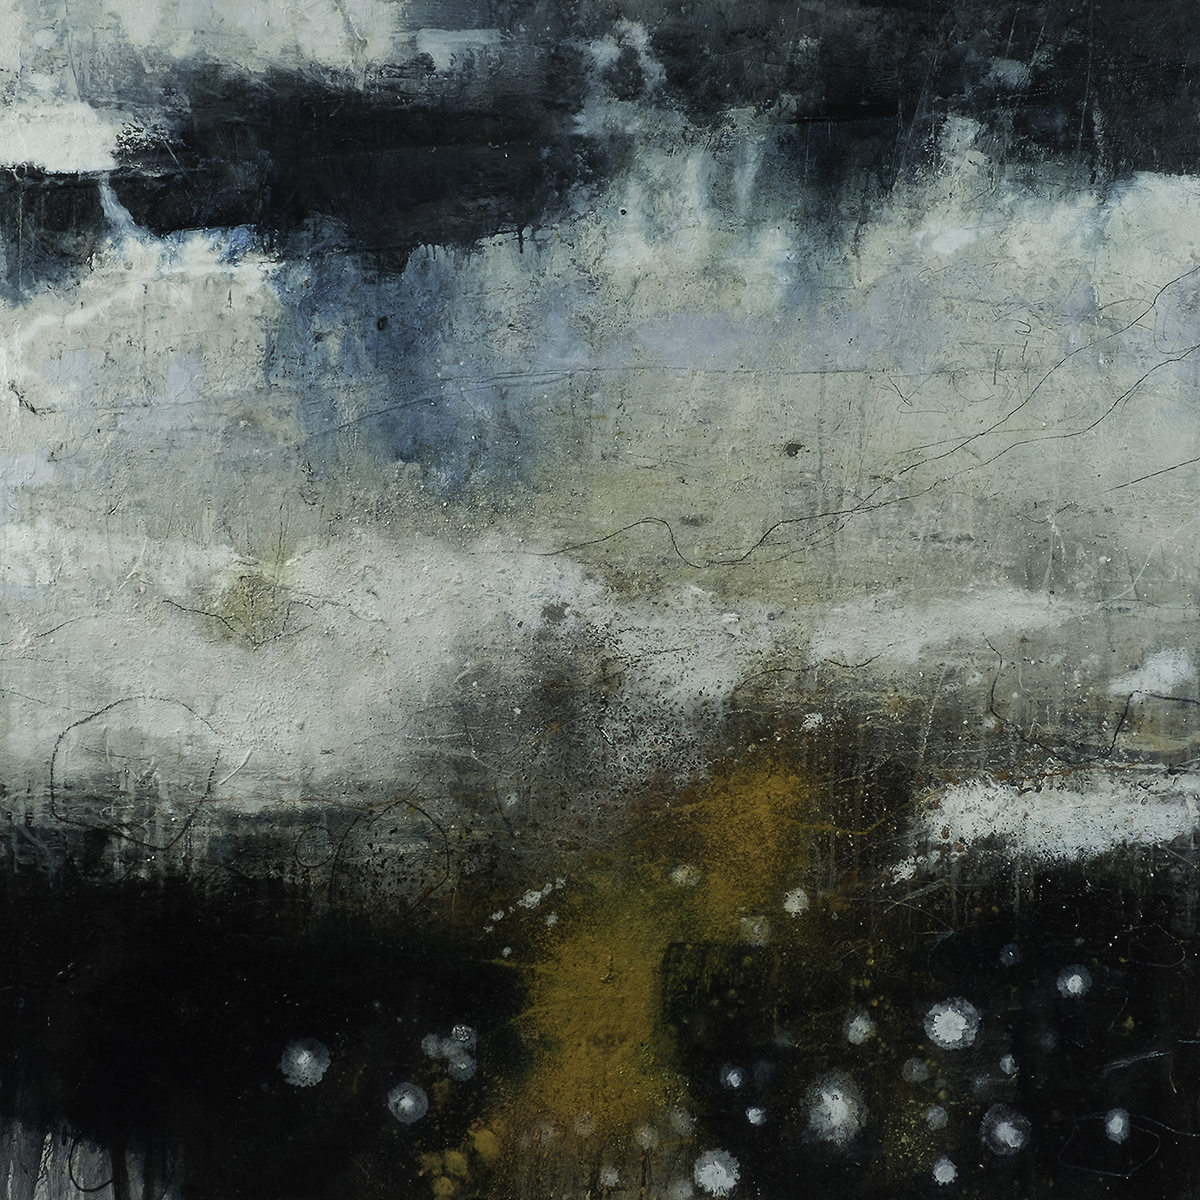 edge of the earth - Campden Gallery 2019info@lewisnoble.co.ukView